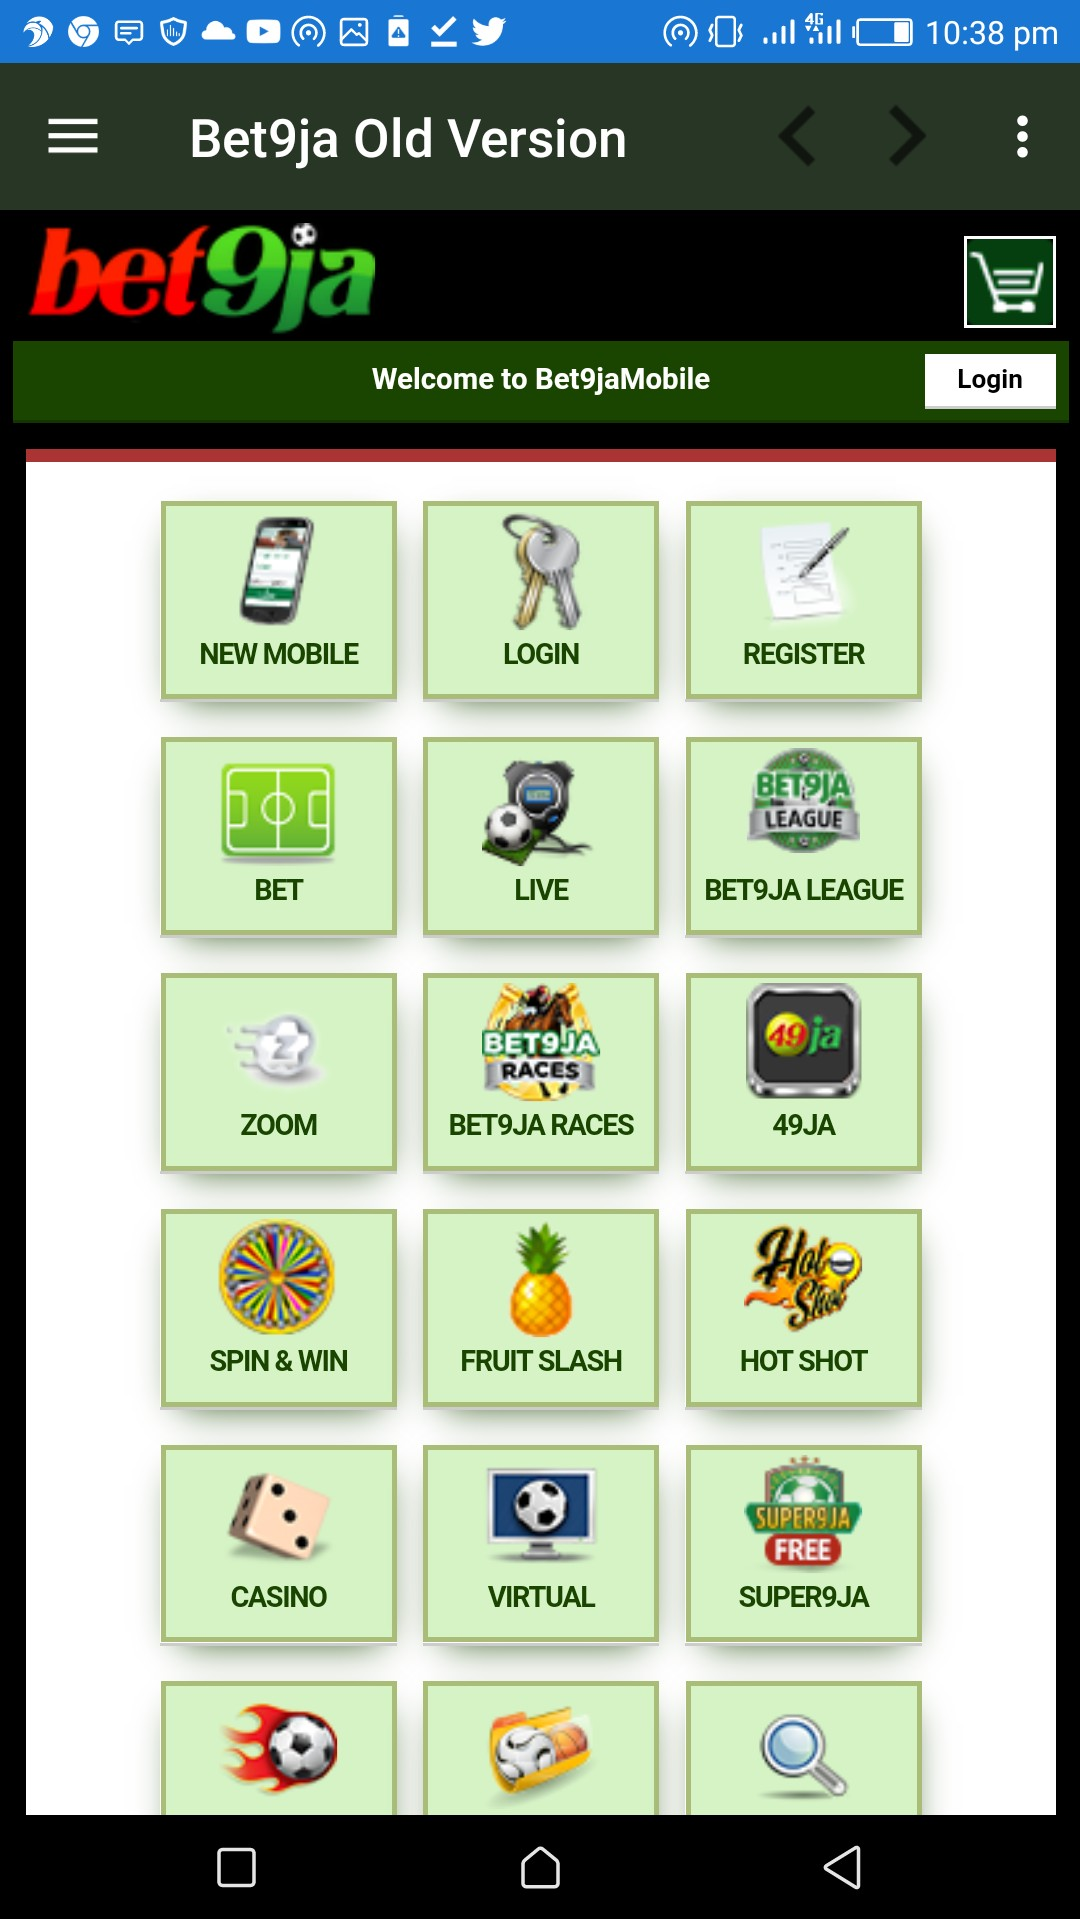 Screenshot 20200111 223818 - Bet9ja Mobile App Old Version - Download Old Bet9ja Apk App